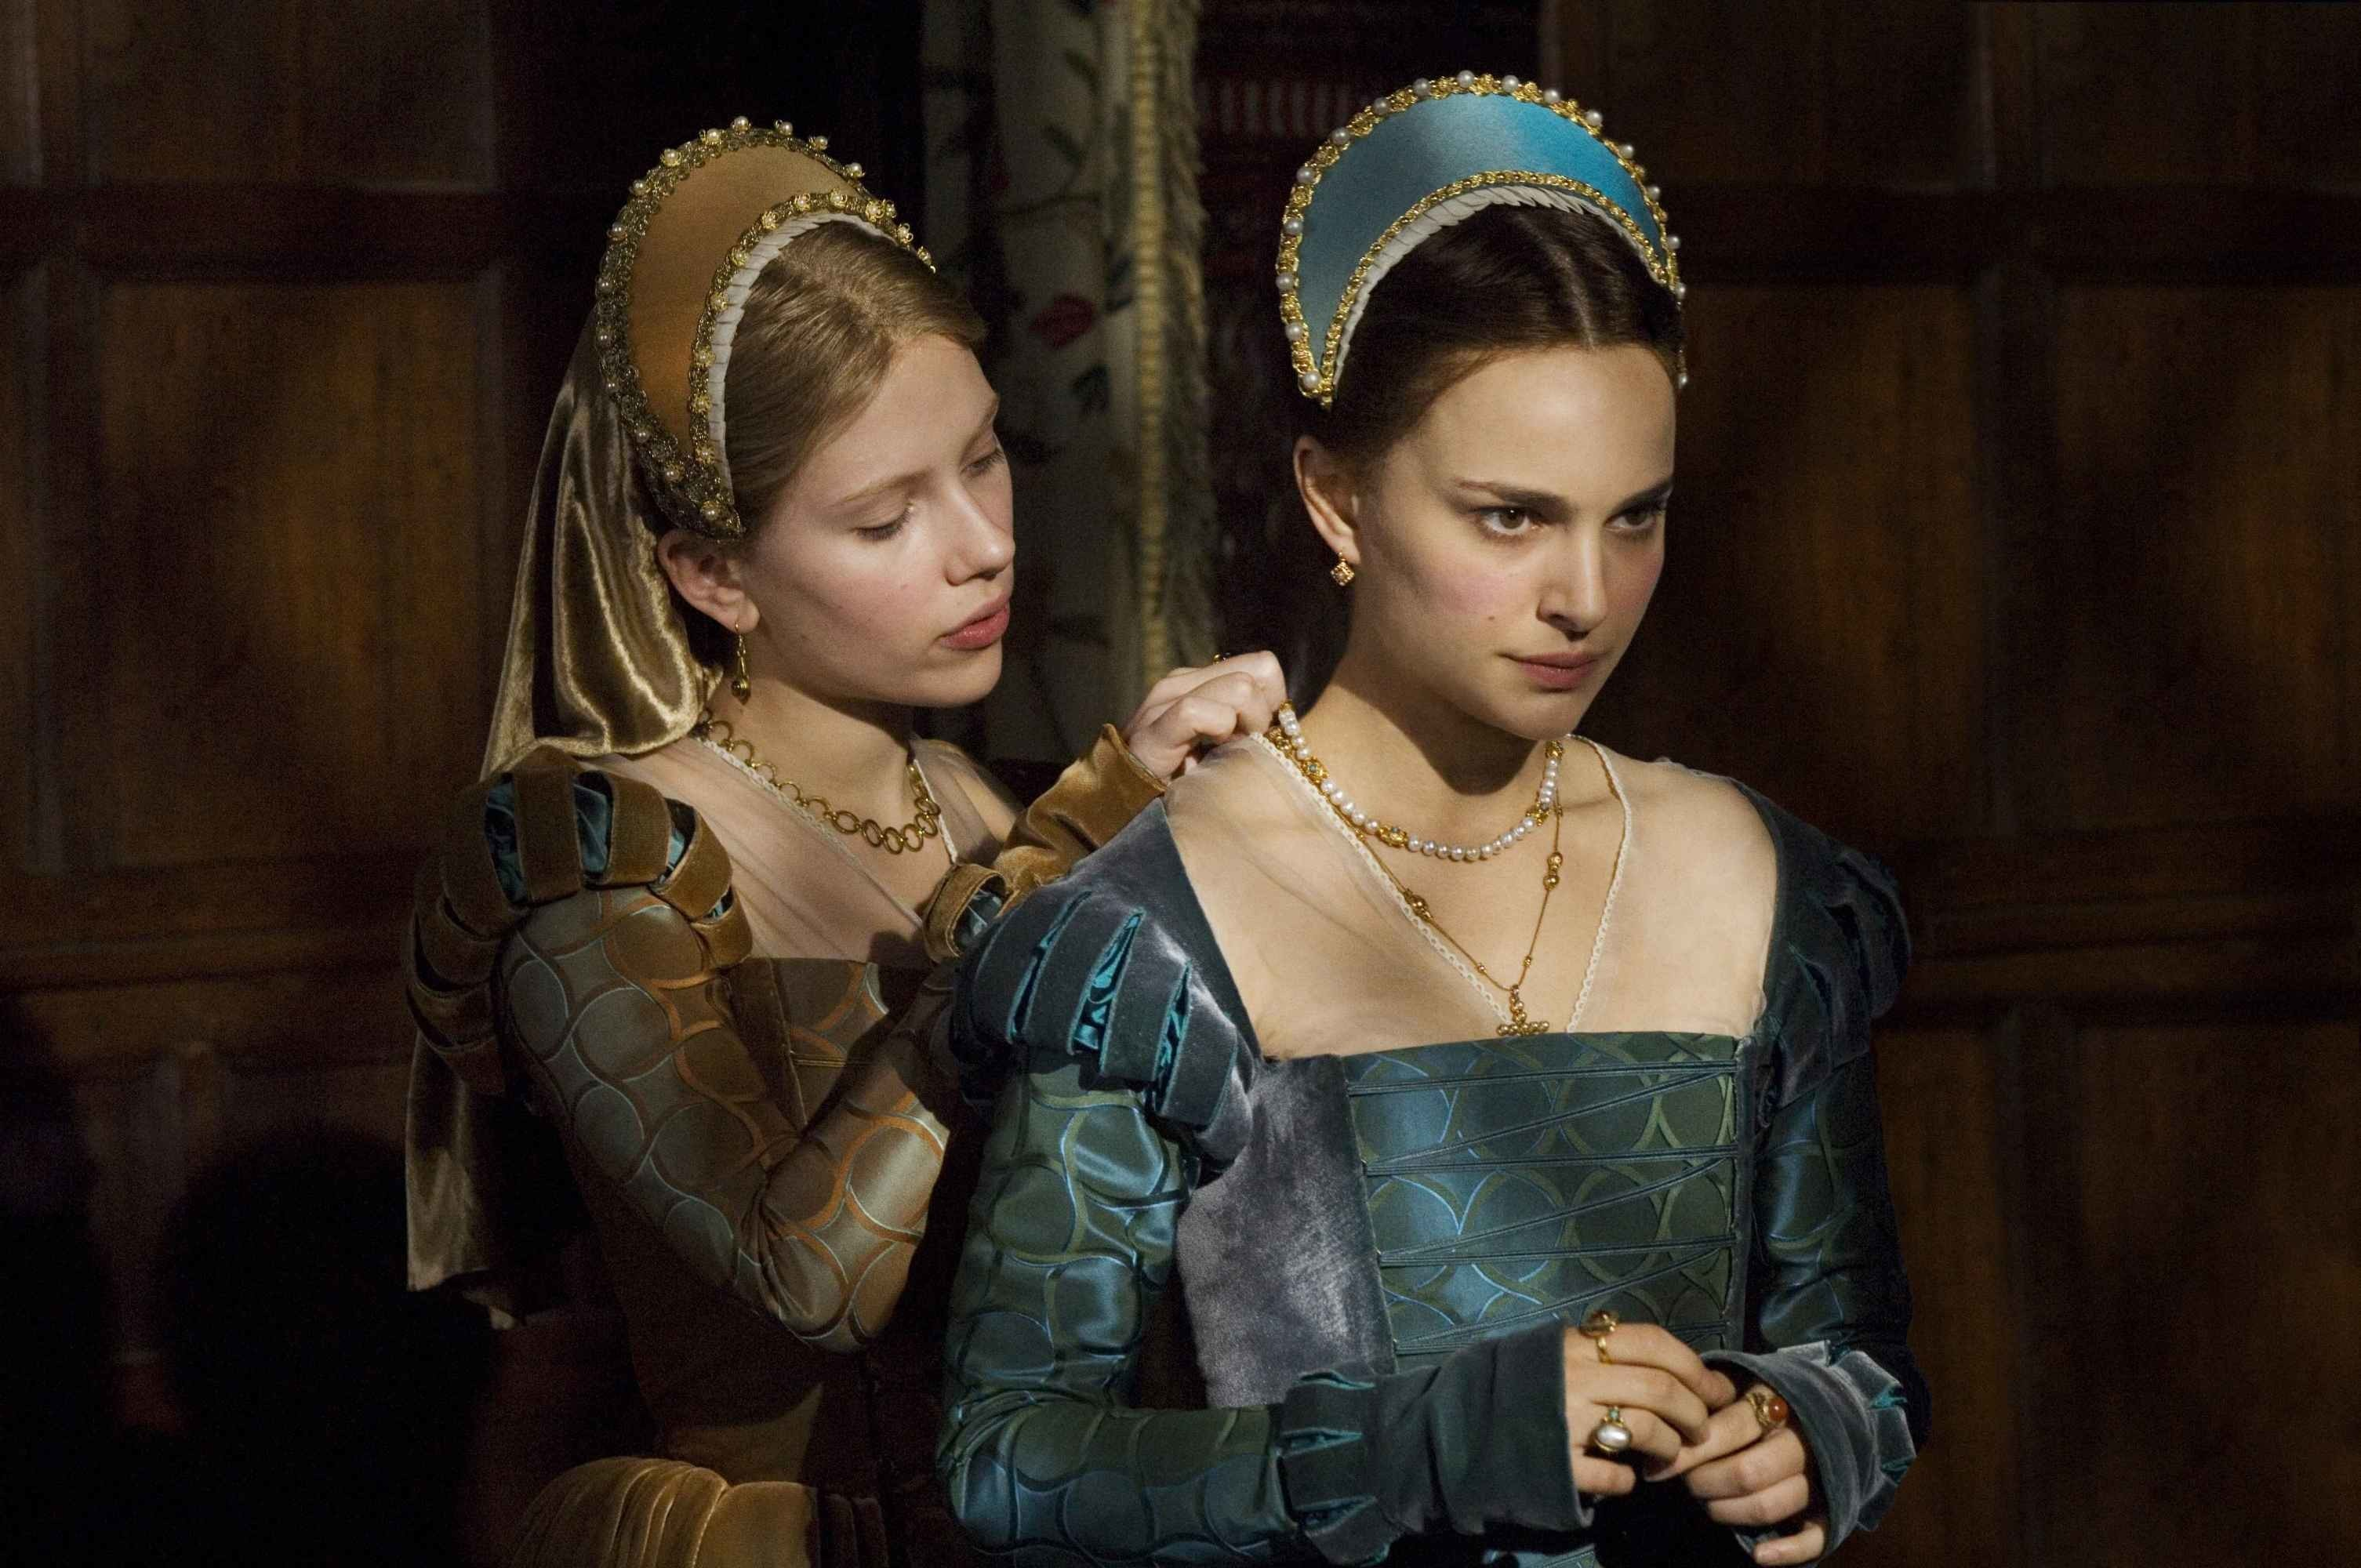 3011x2000  Jonathan Rhys-Meyers as King Henry the Eighth and Natalie Dormer  as Anne Boleyn in The Tudors. Natalie Dormer as Anne Boleyn in The T.